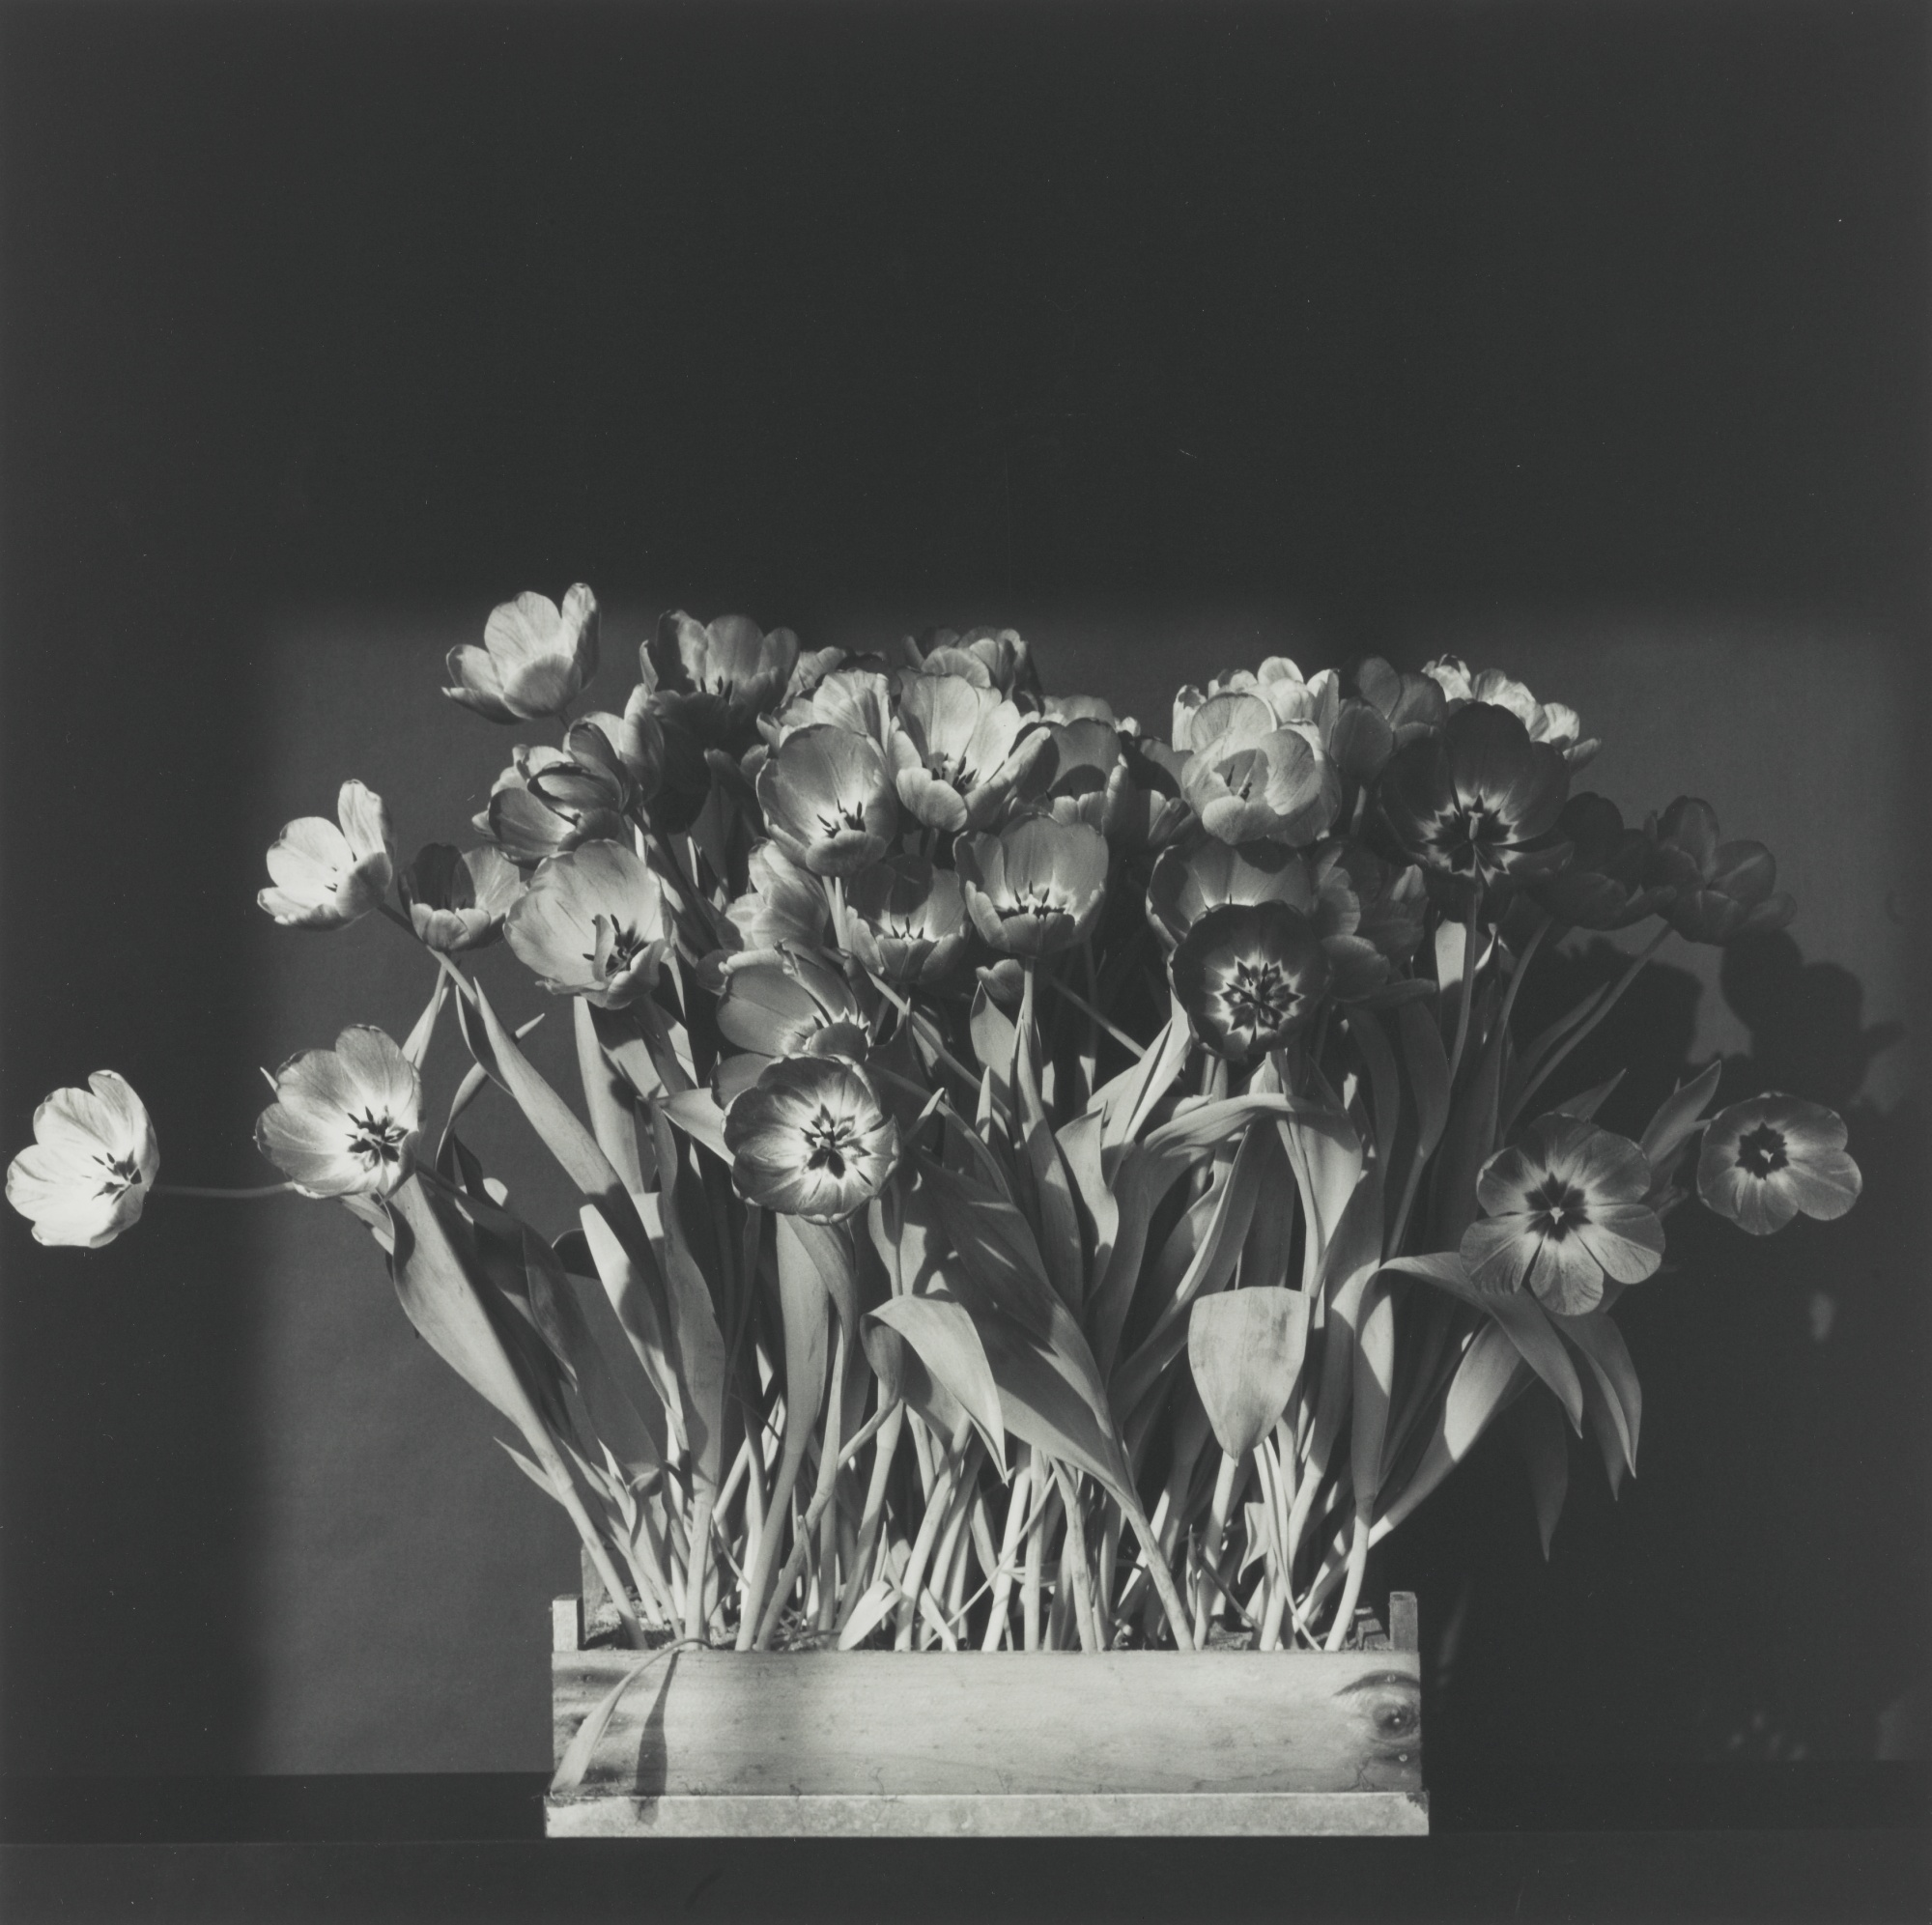 Robert Mapplethorpe-Tulips-1983